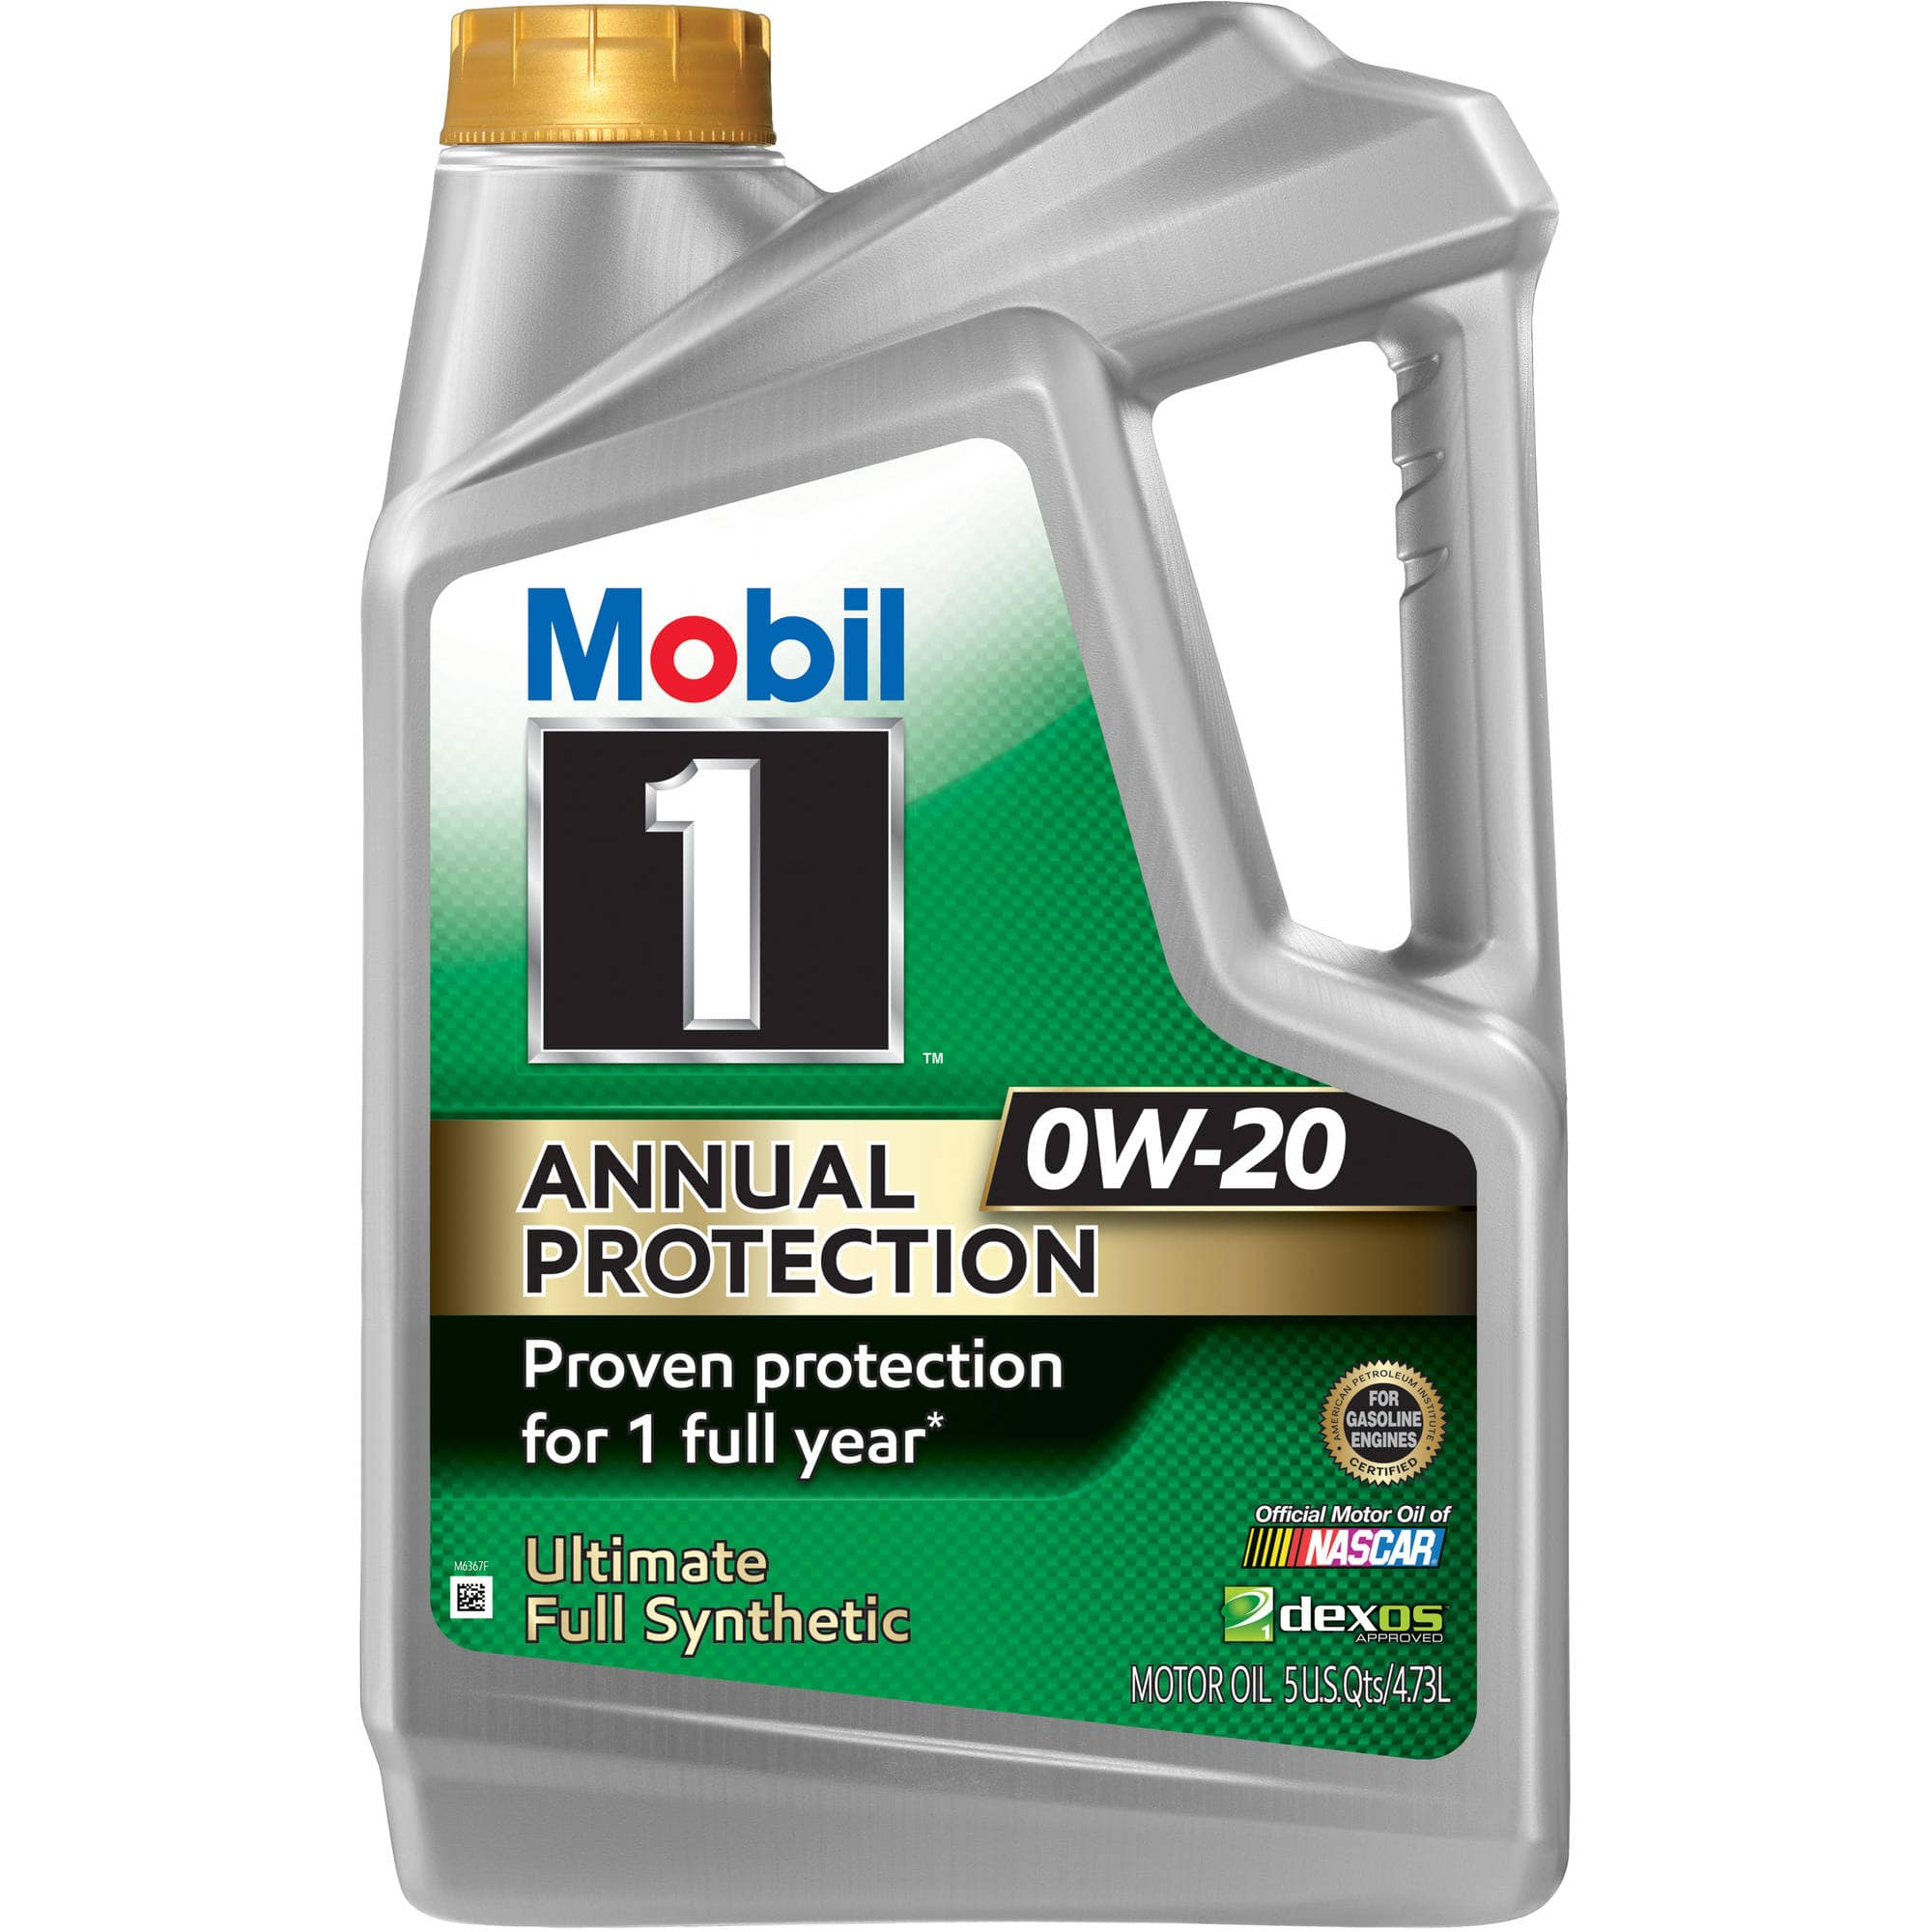 Mobil 1 Annual Protection Full Synthetic Motor Oil 5 Quart $25, One Qt $7 Wal-Mart B&M YMMV